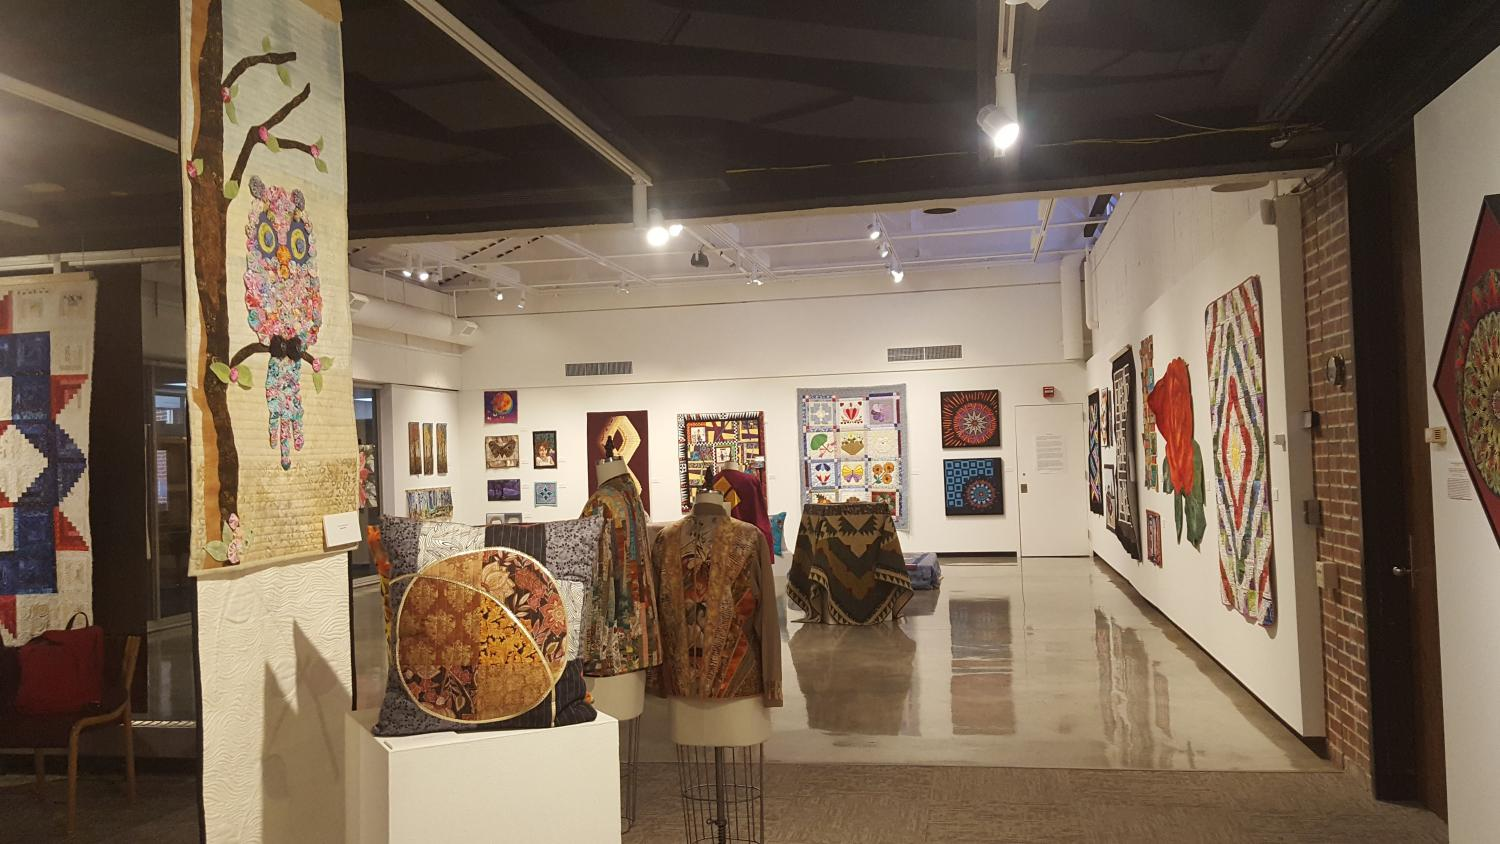 Foster Art Gallery showcases quilting as an art form